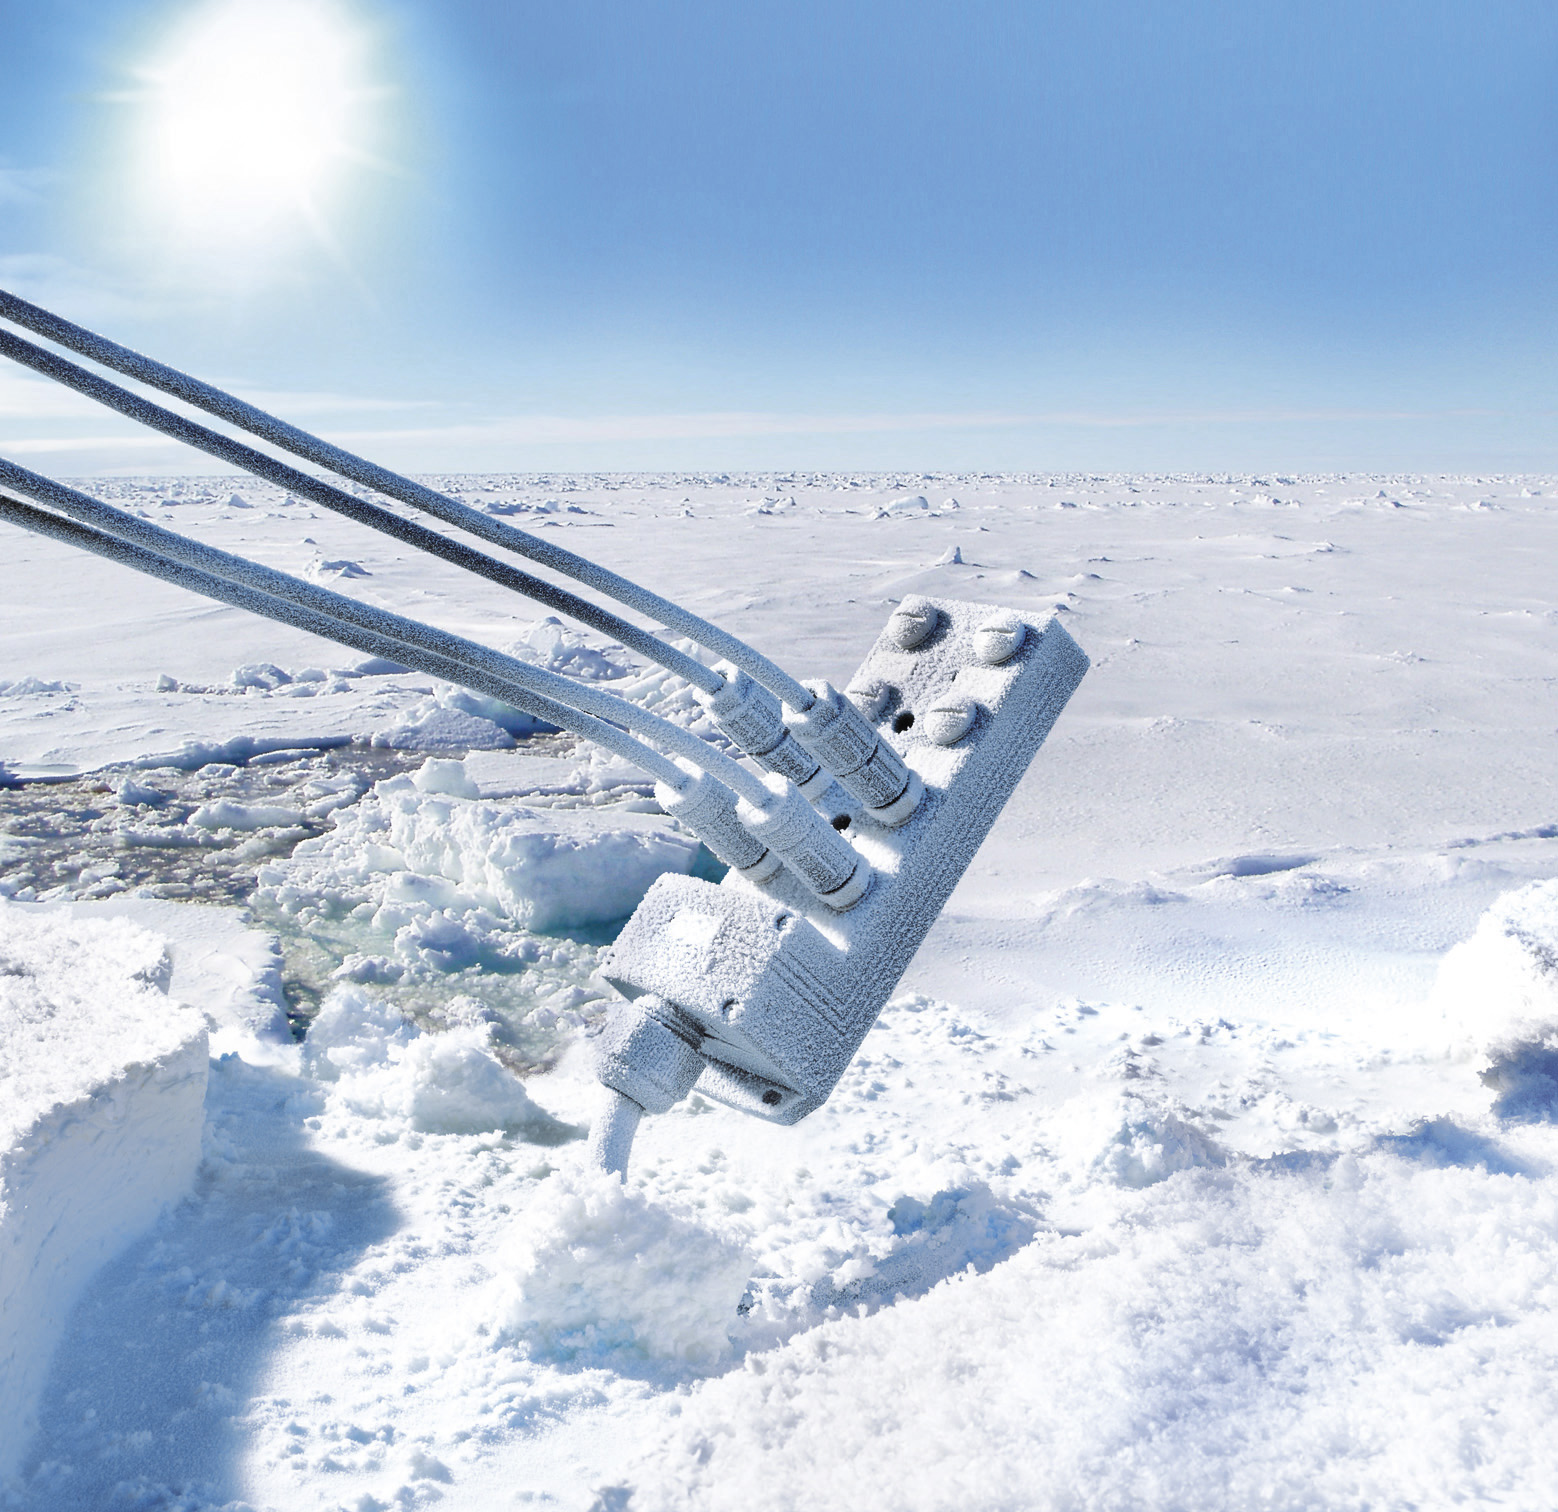 The M12 Outdoor product line guarantees dependable connections, even at temperatures between -40 and +105 degrees Celsius.